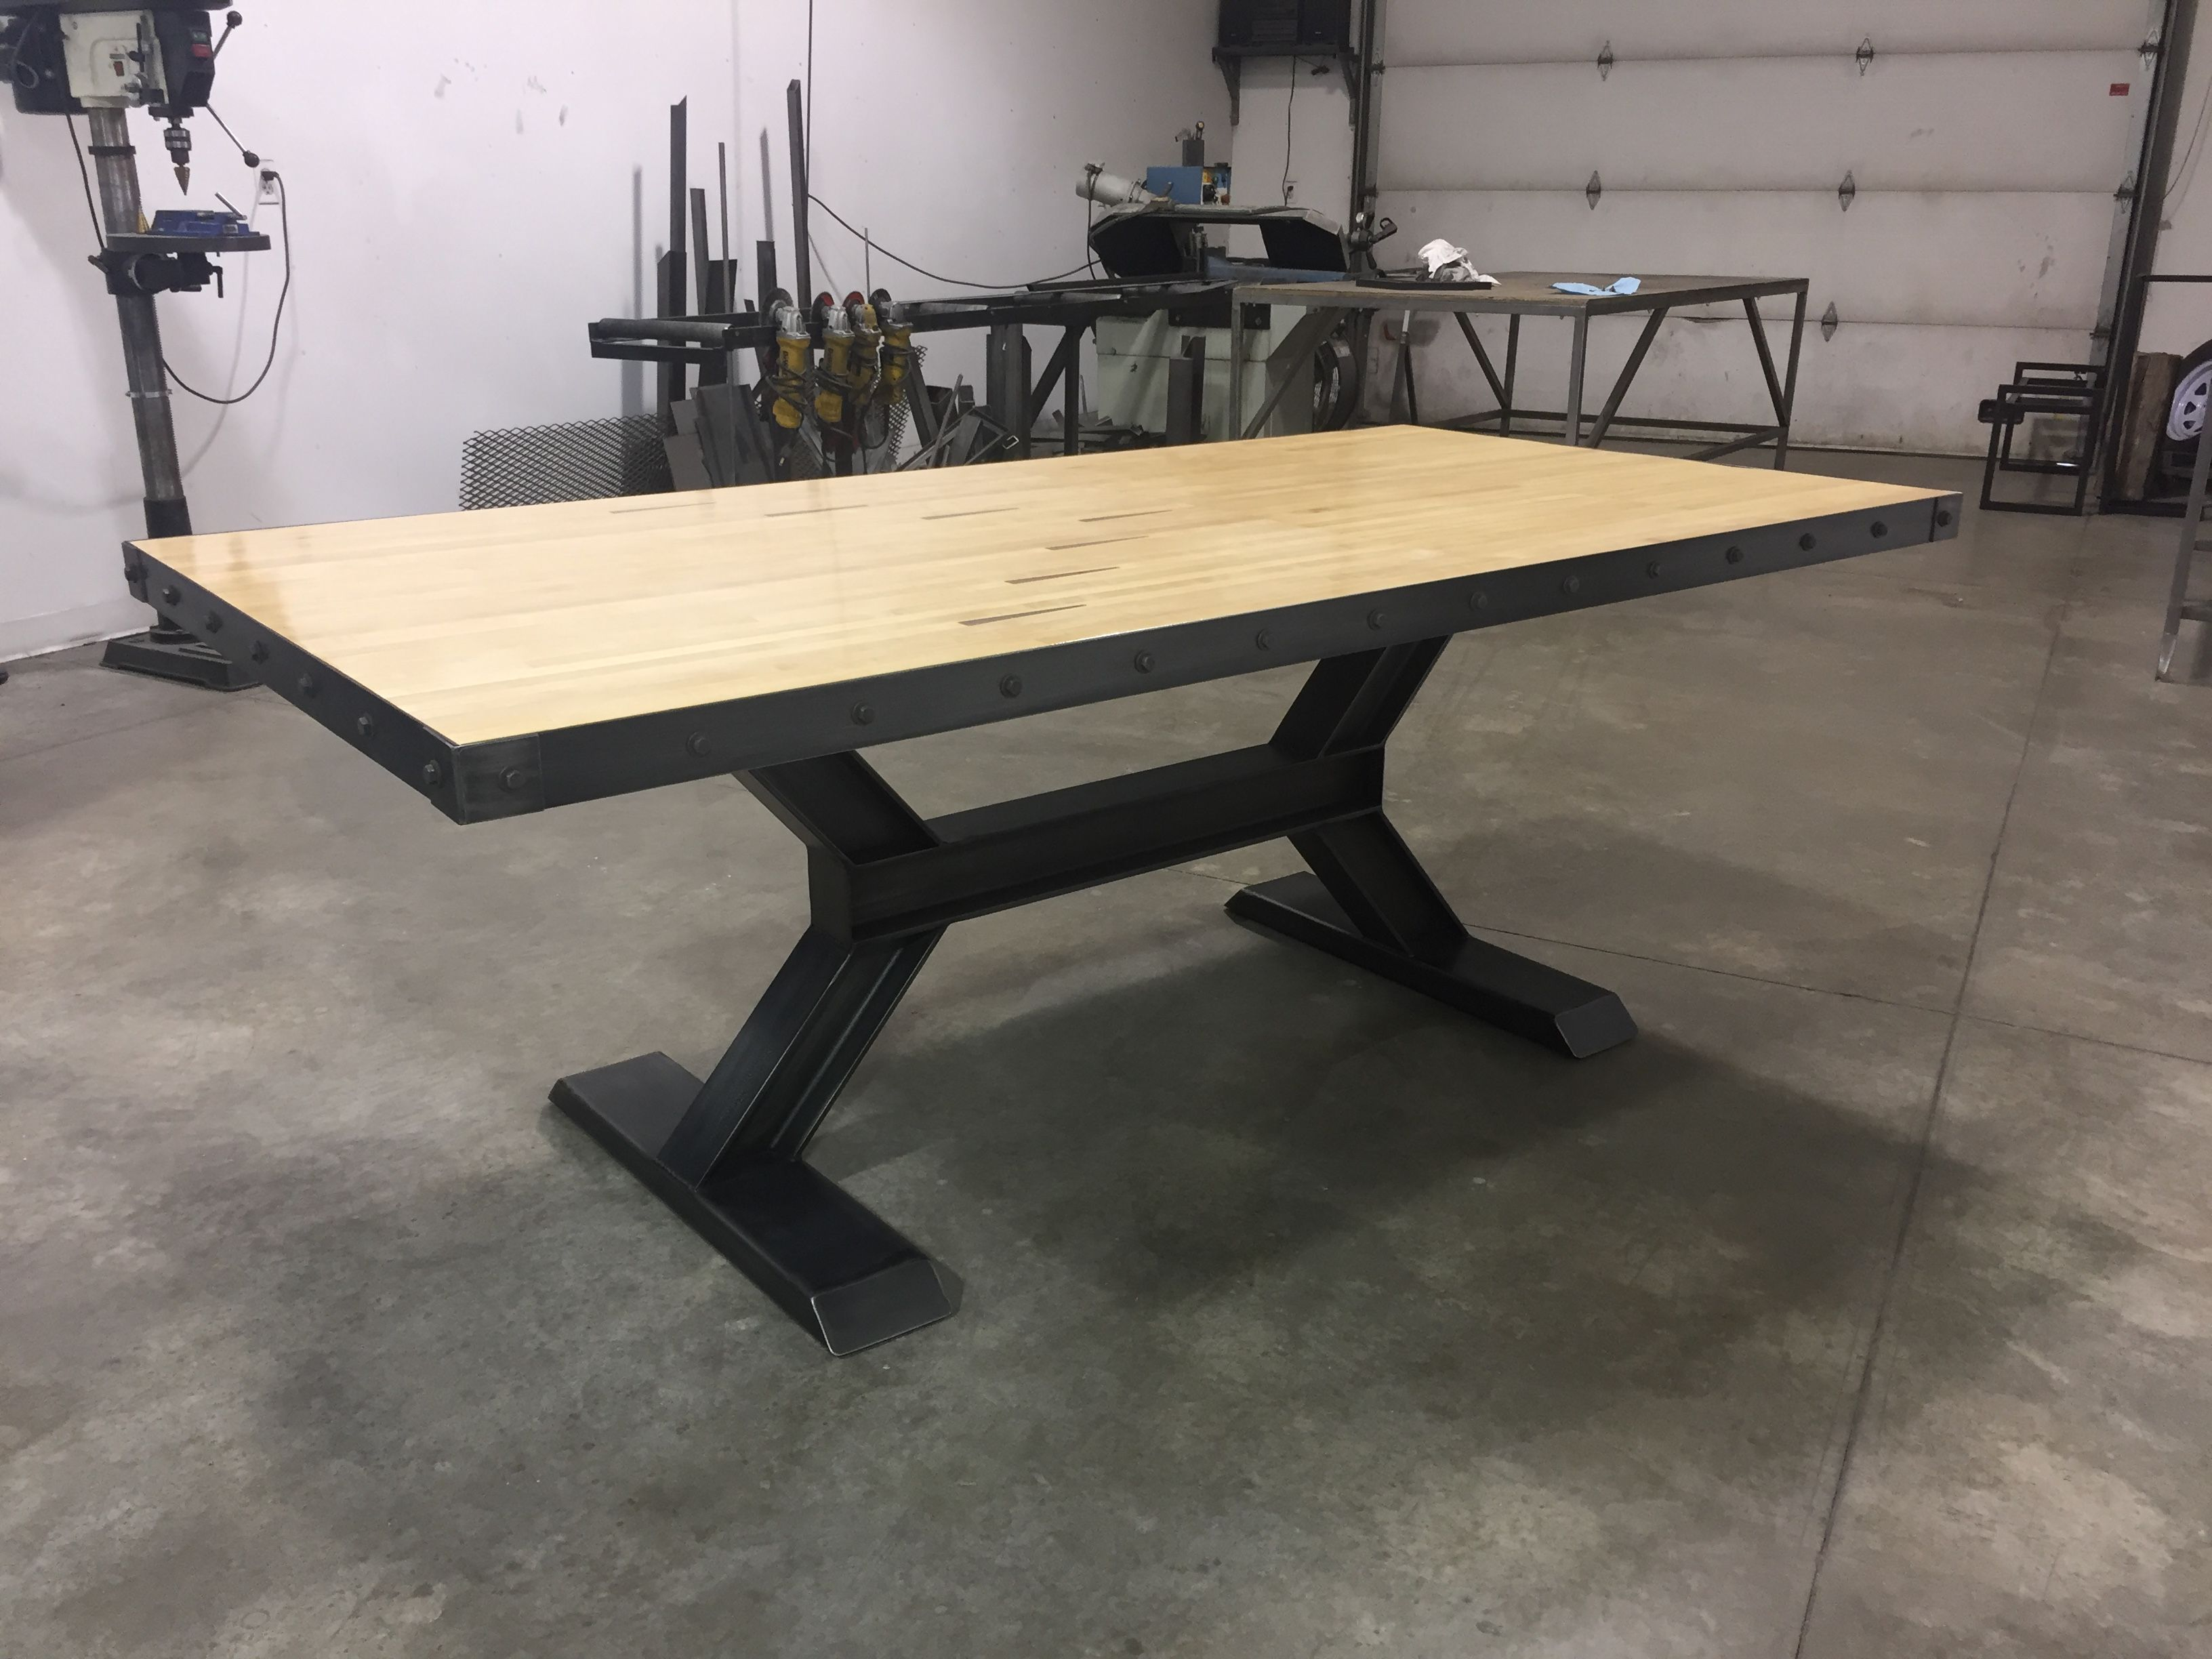 Pin By Jennifer Aery On Welding Kitchen Table Legs Wooden Dining Tables Steel Dining Table Legs